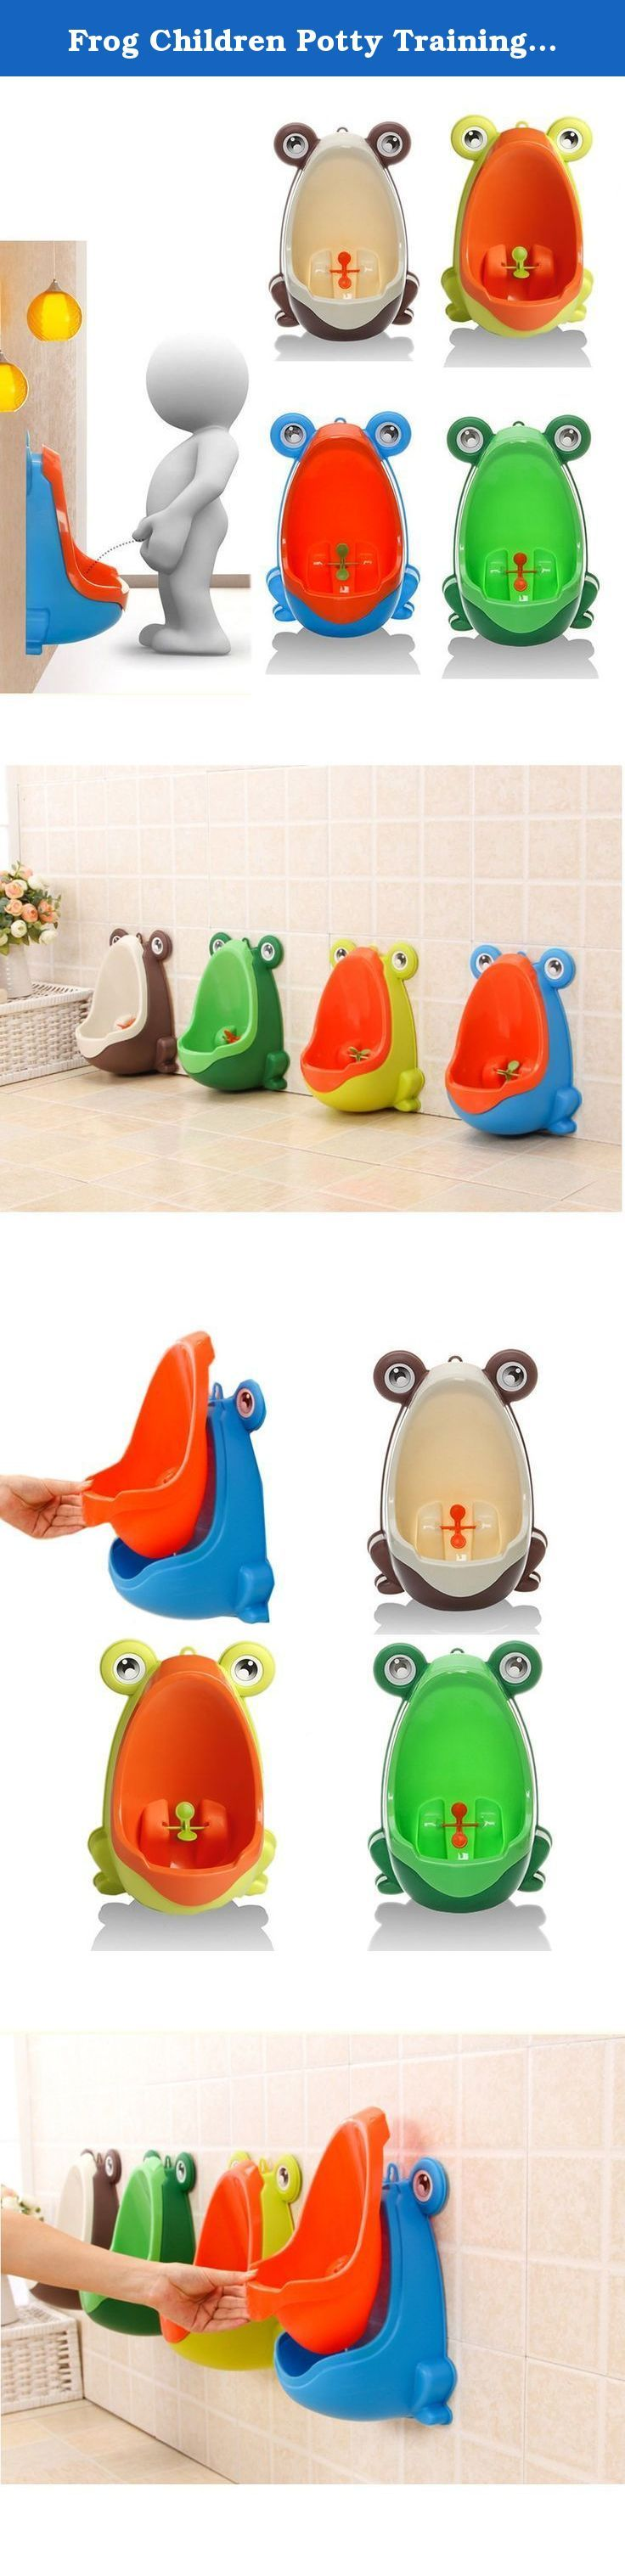 Frog Children Potty Training Toilet Kids Urinal For Boys Pee Trainer Bathroom-GREEN WITH ORANGE. Shipment : Shipping to: Americas, Europe, Asia Excludes: APO/FPO, Austria, Switzerland, Spain, Hong Kong, Kuwait, Cameroon, Japan, China, Taiwan, Jordan, Macau, Germany, Argentina, Italy, Palau, French Polynesia, Jersey, Bolivia Descriptions: 100% brand new and high quality Environmentally friendly material, nontoxic and no peculiar smell . Frog shape and rotating windmill improves your…